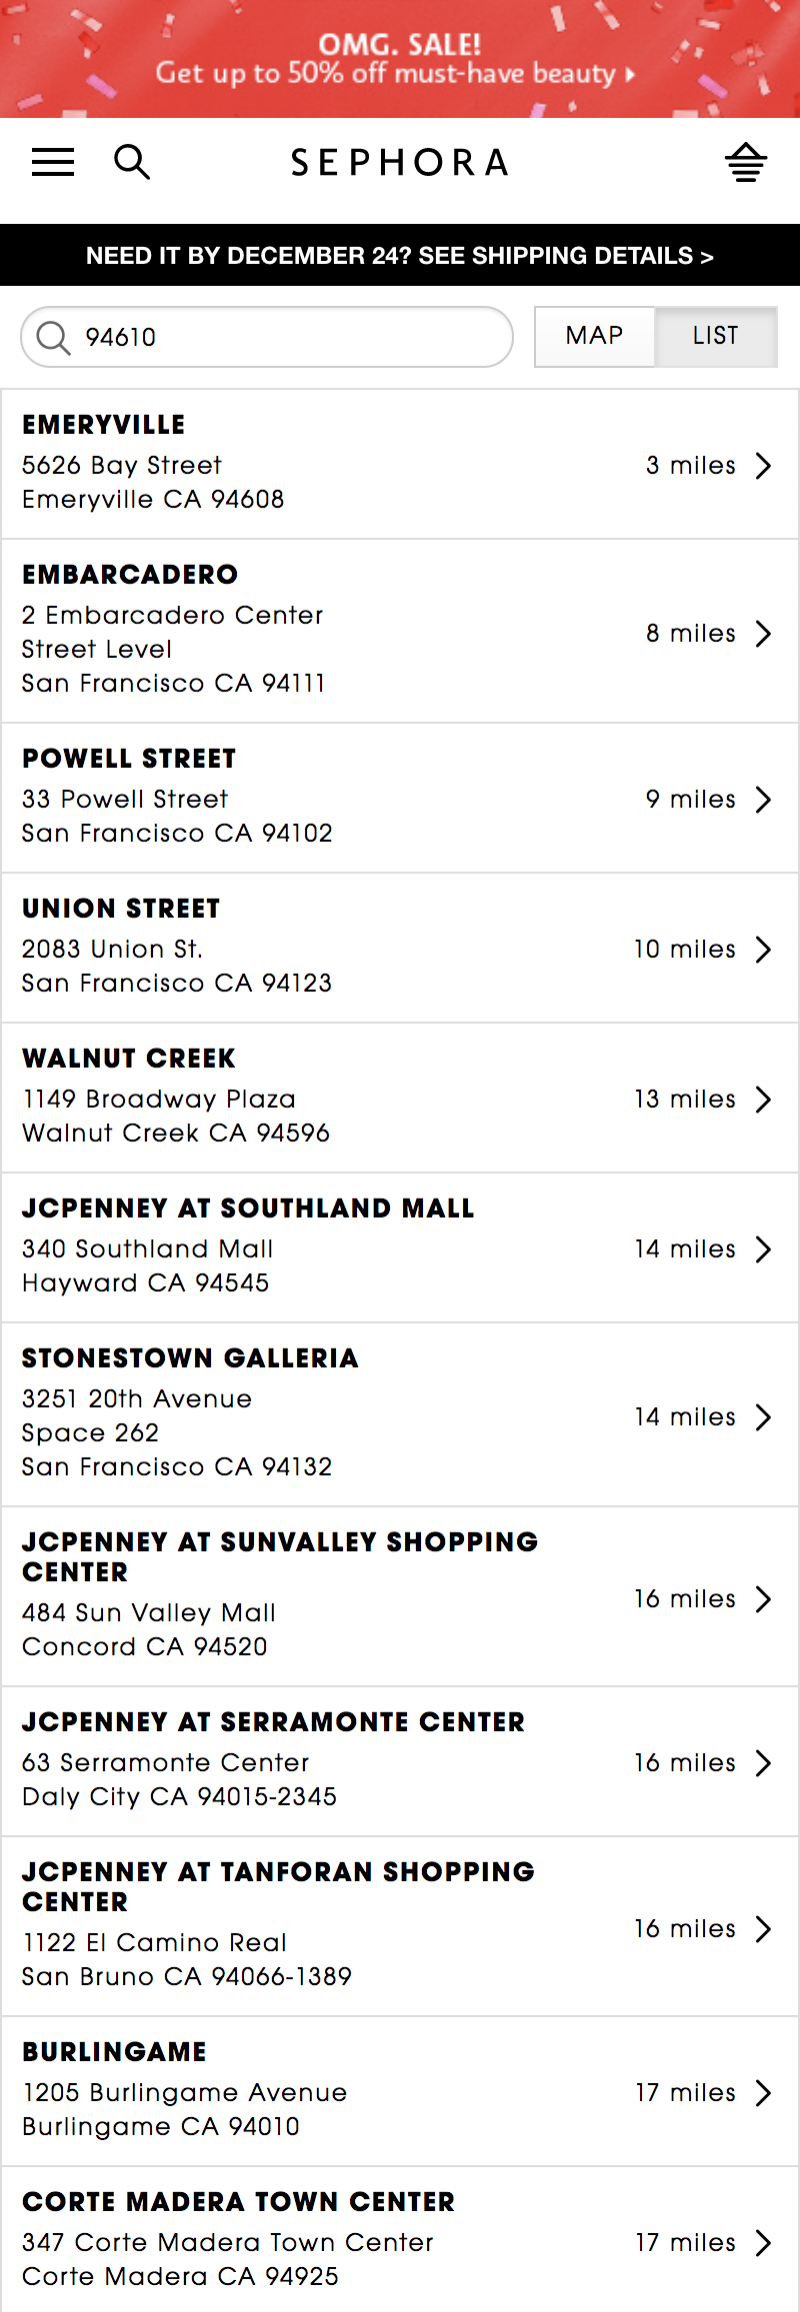 screencapture-m-sephora-store-locations-events-1513272755402.png